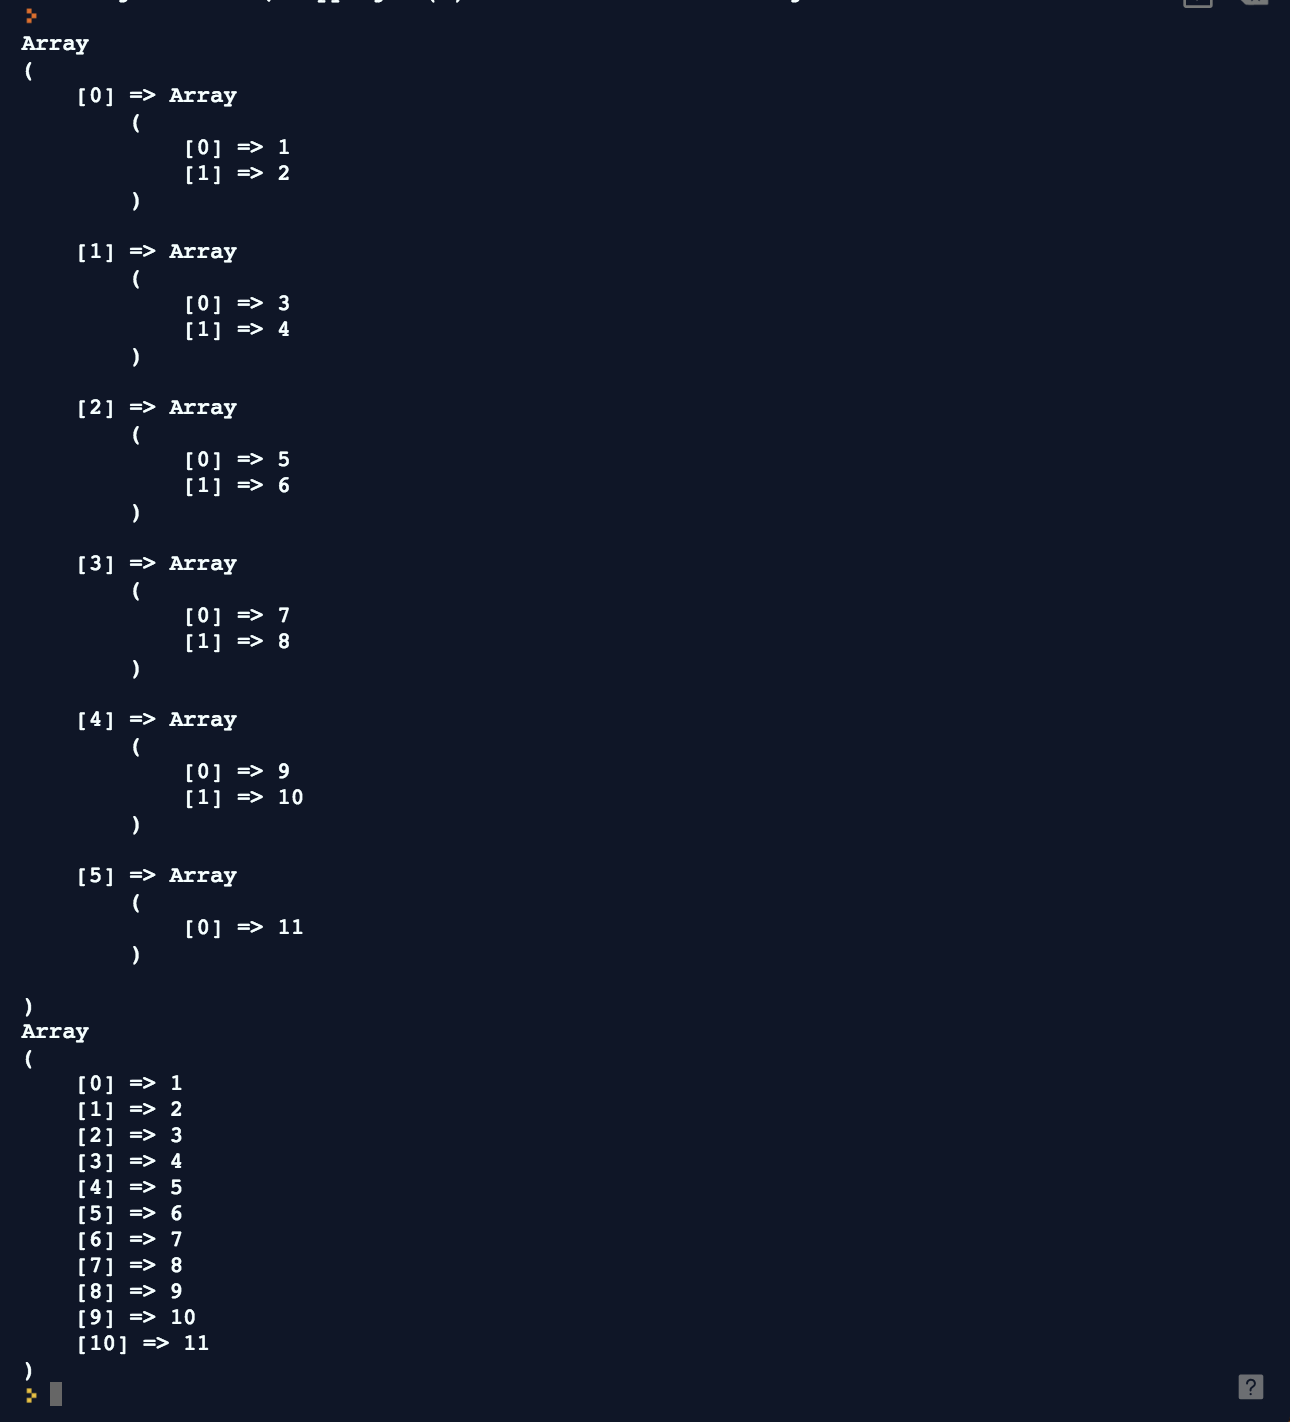 string contains php array